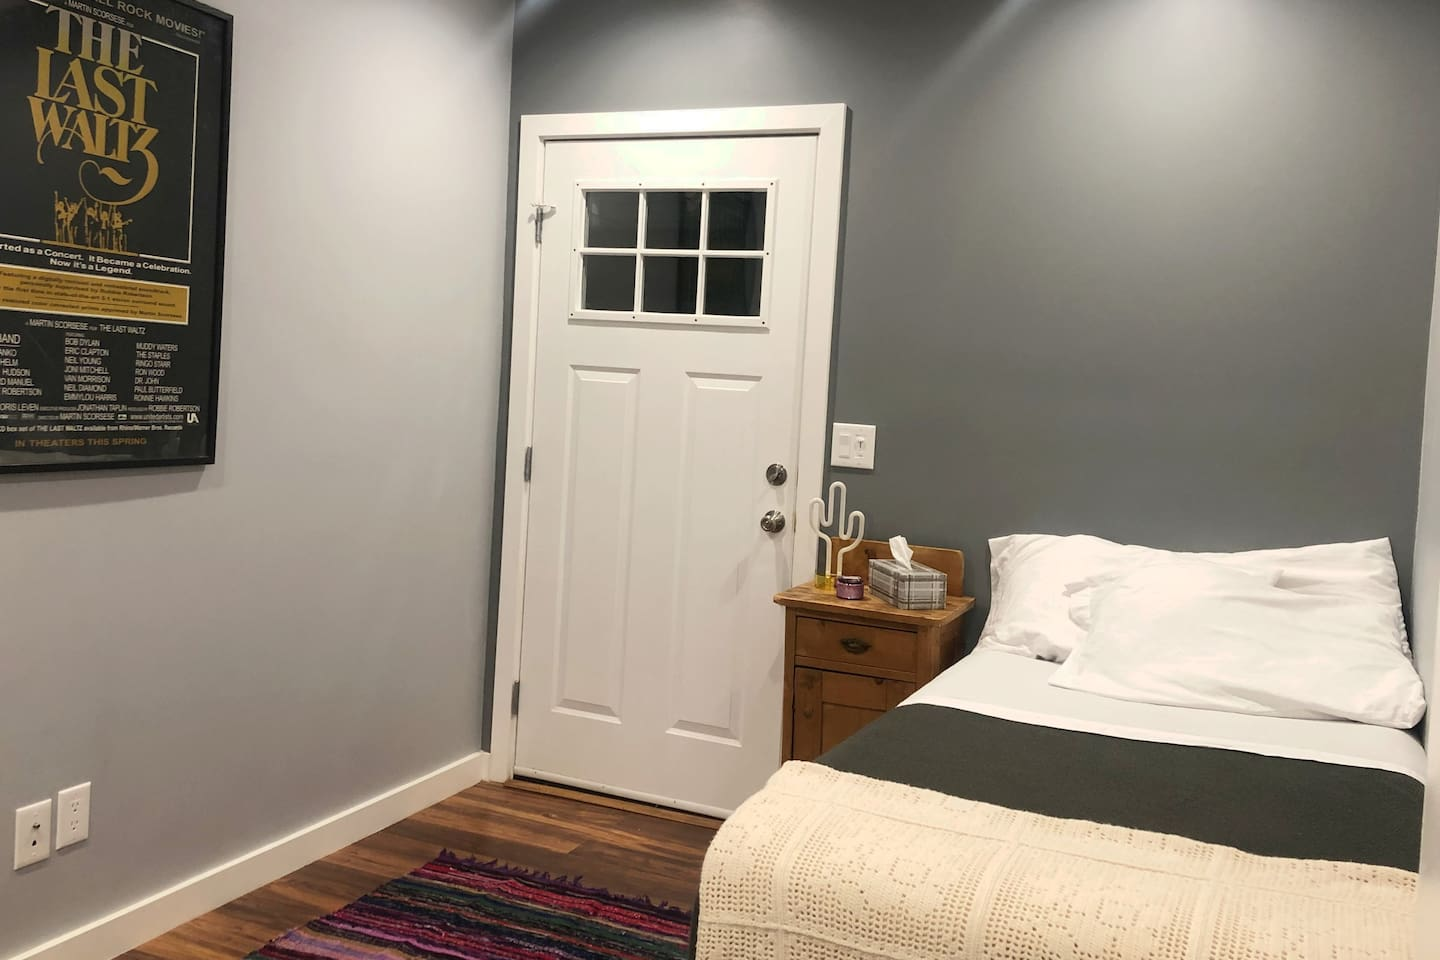 Private Room with Twin Bed. Personal entrance and exit.